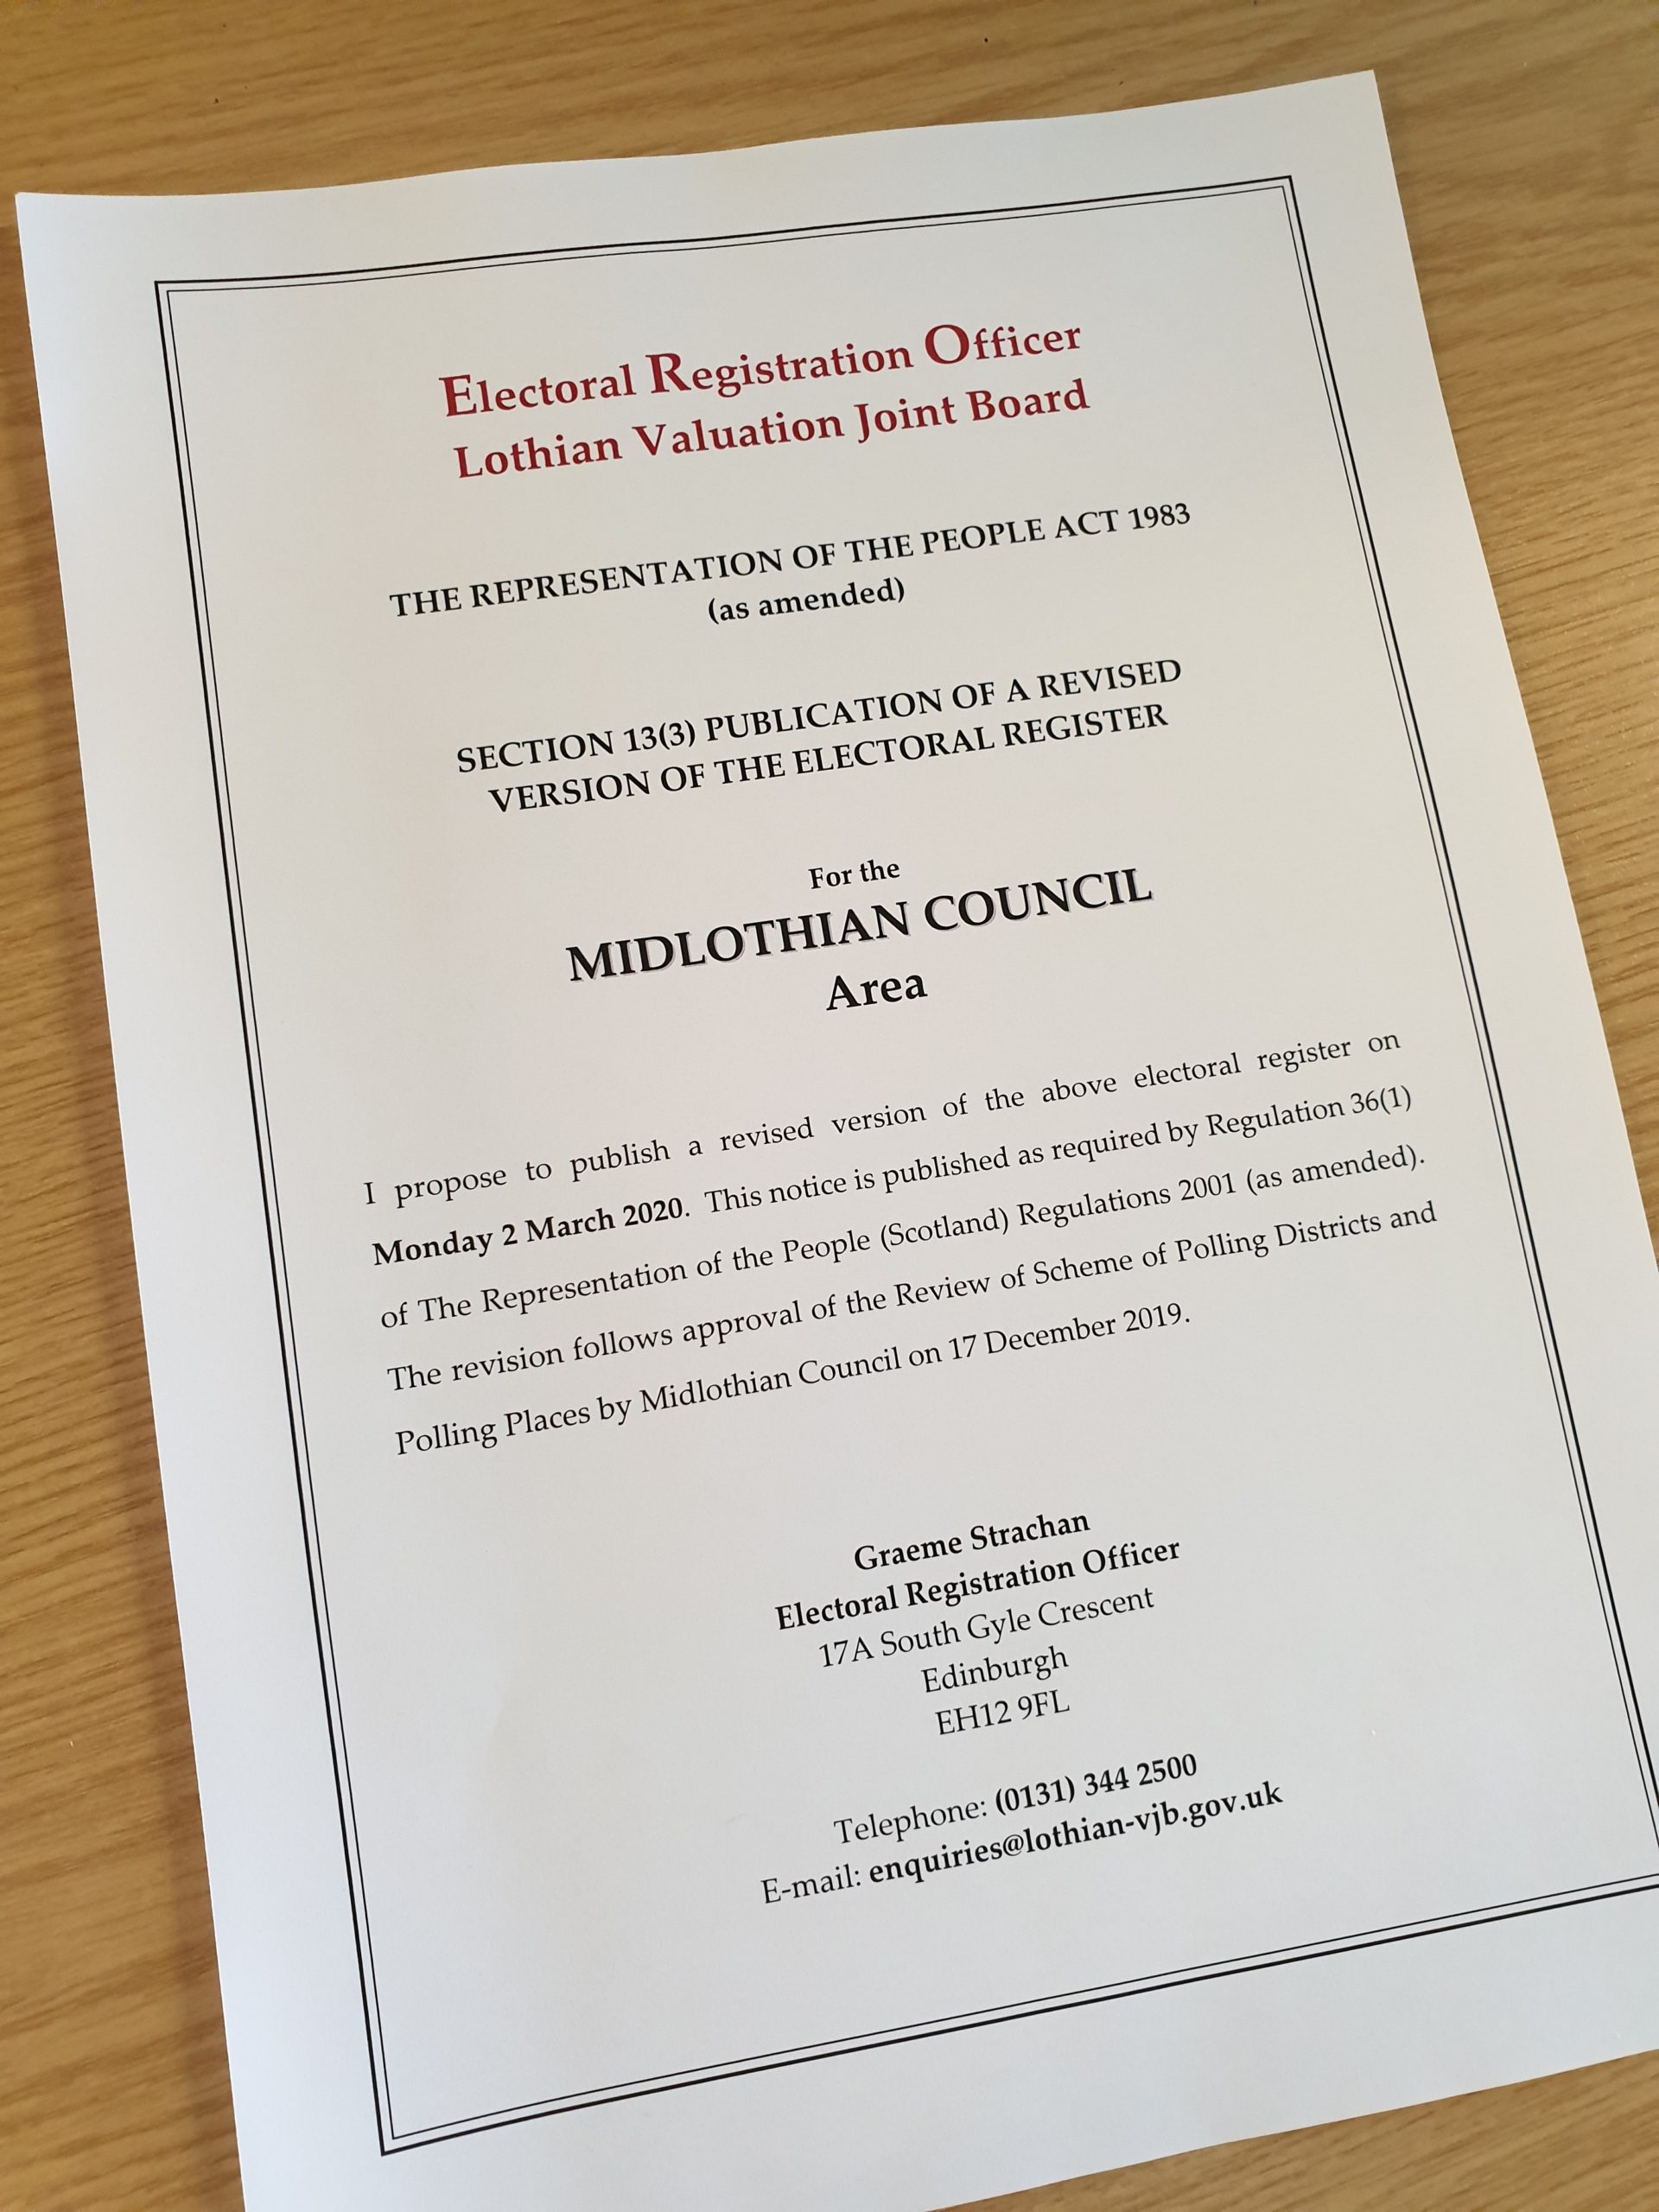 Publication of a Revised Version of the Electoral Register for the Midlothian Council Area